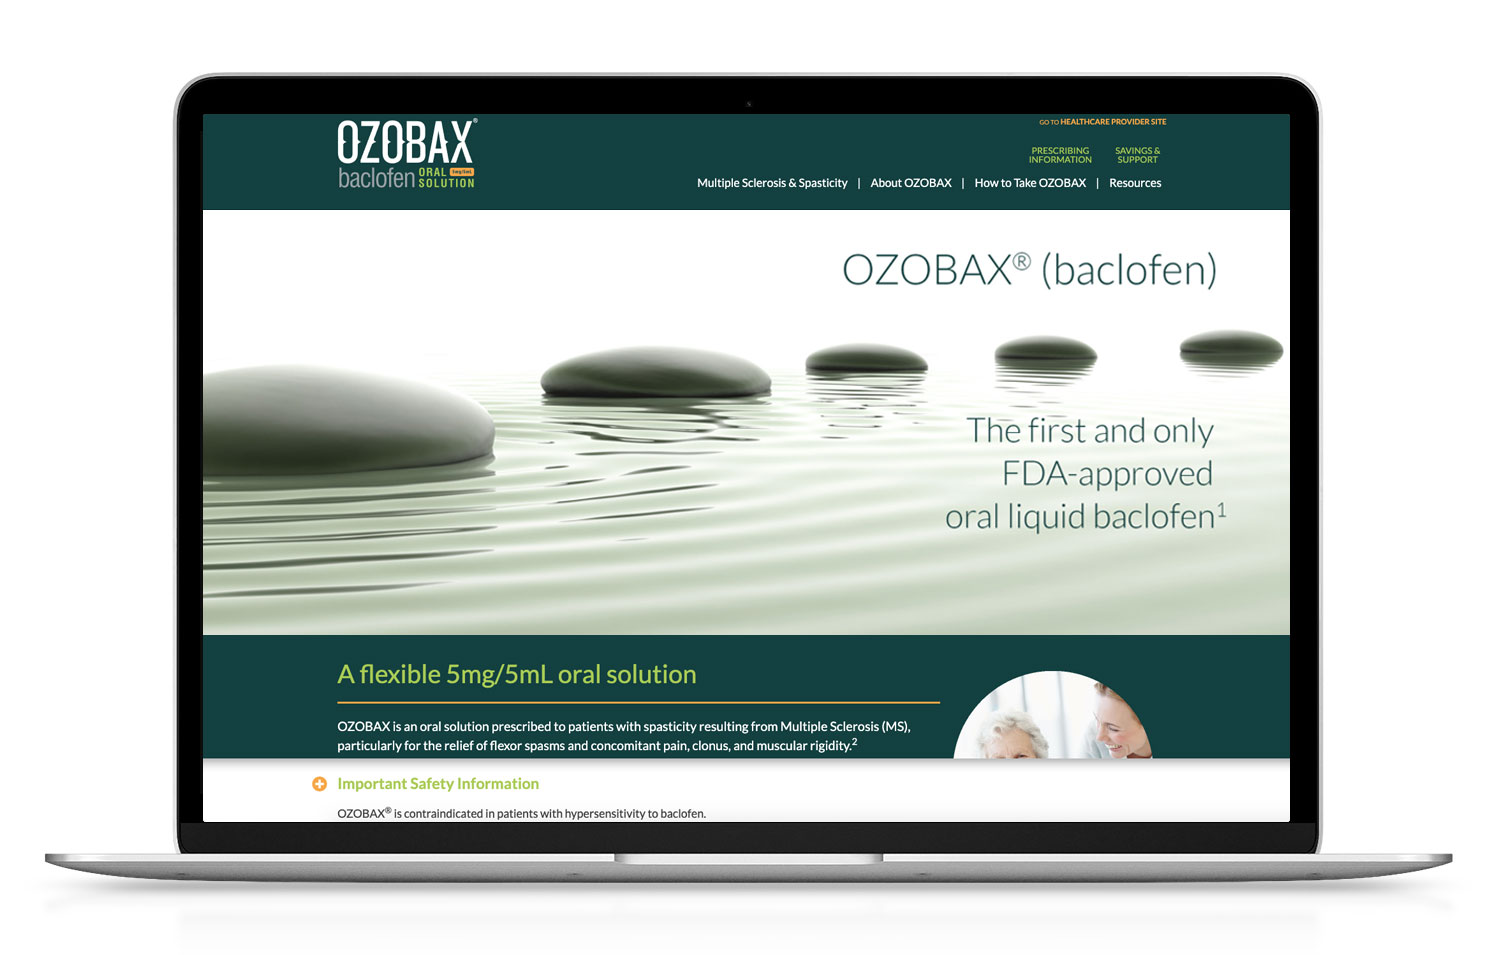 OZOBAX website